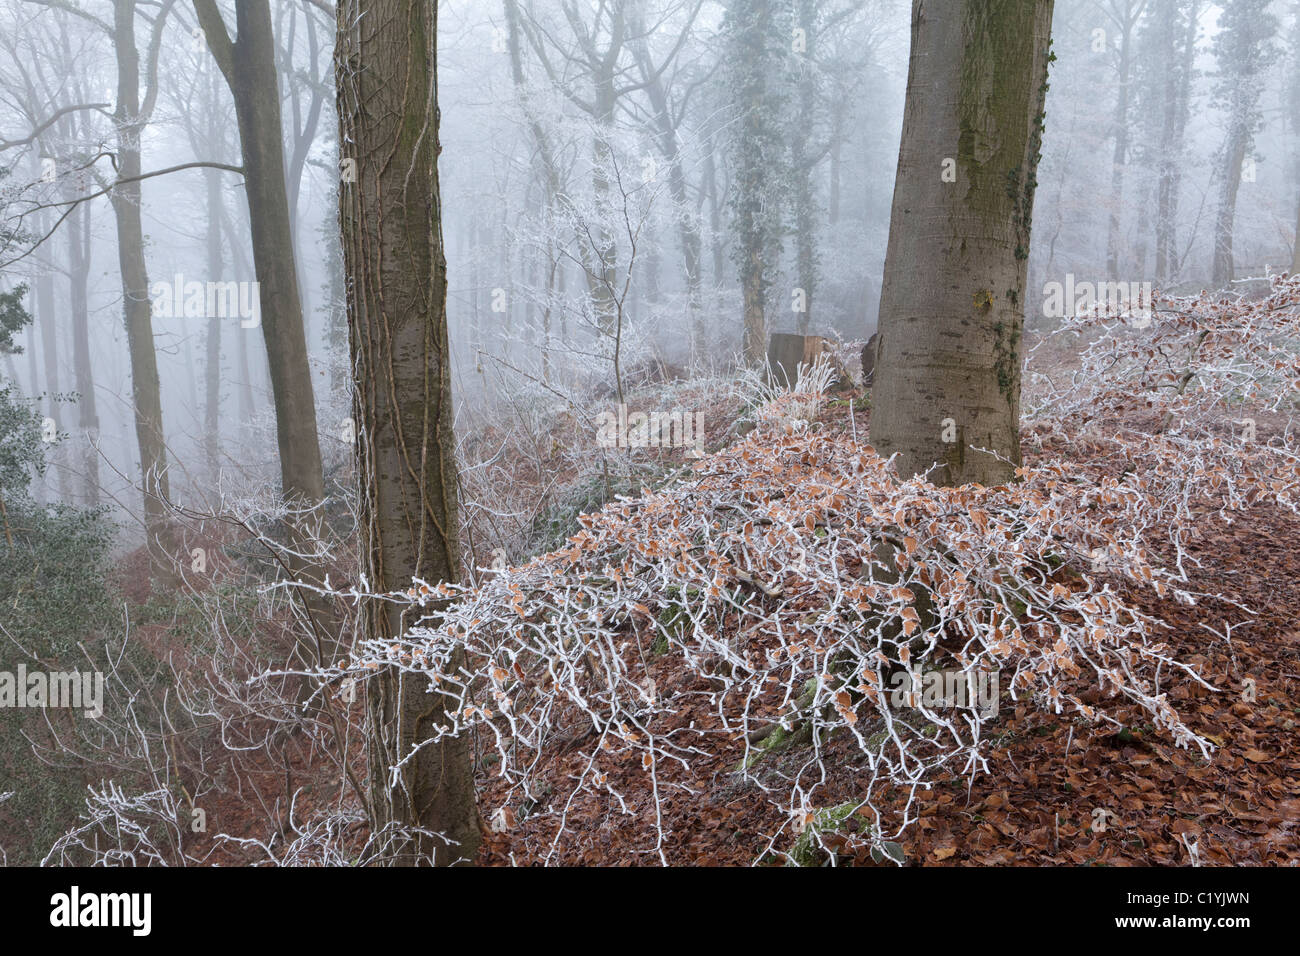 Hoar frost and mist in winter in Maitlands Wood on Scottsquar Hill in the Cotswolds at Edge, Gloucestershire, England, - Stock Image